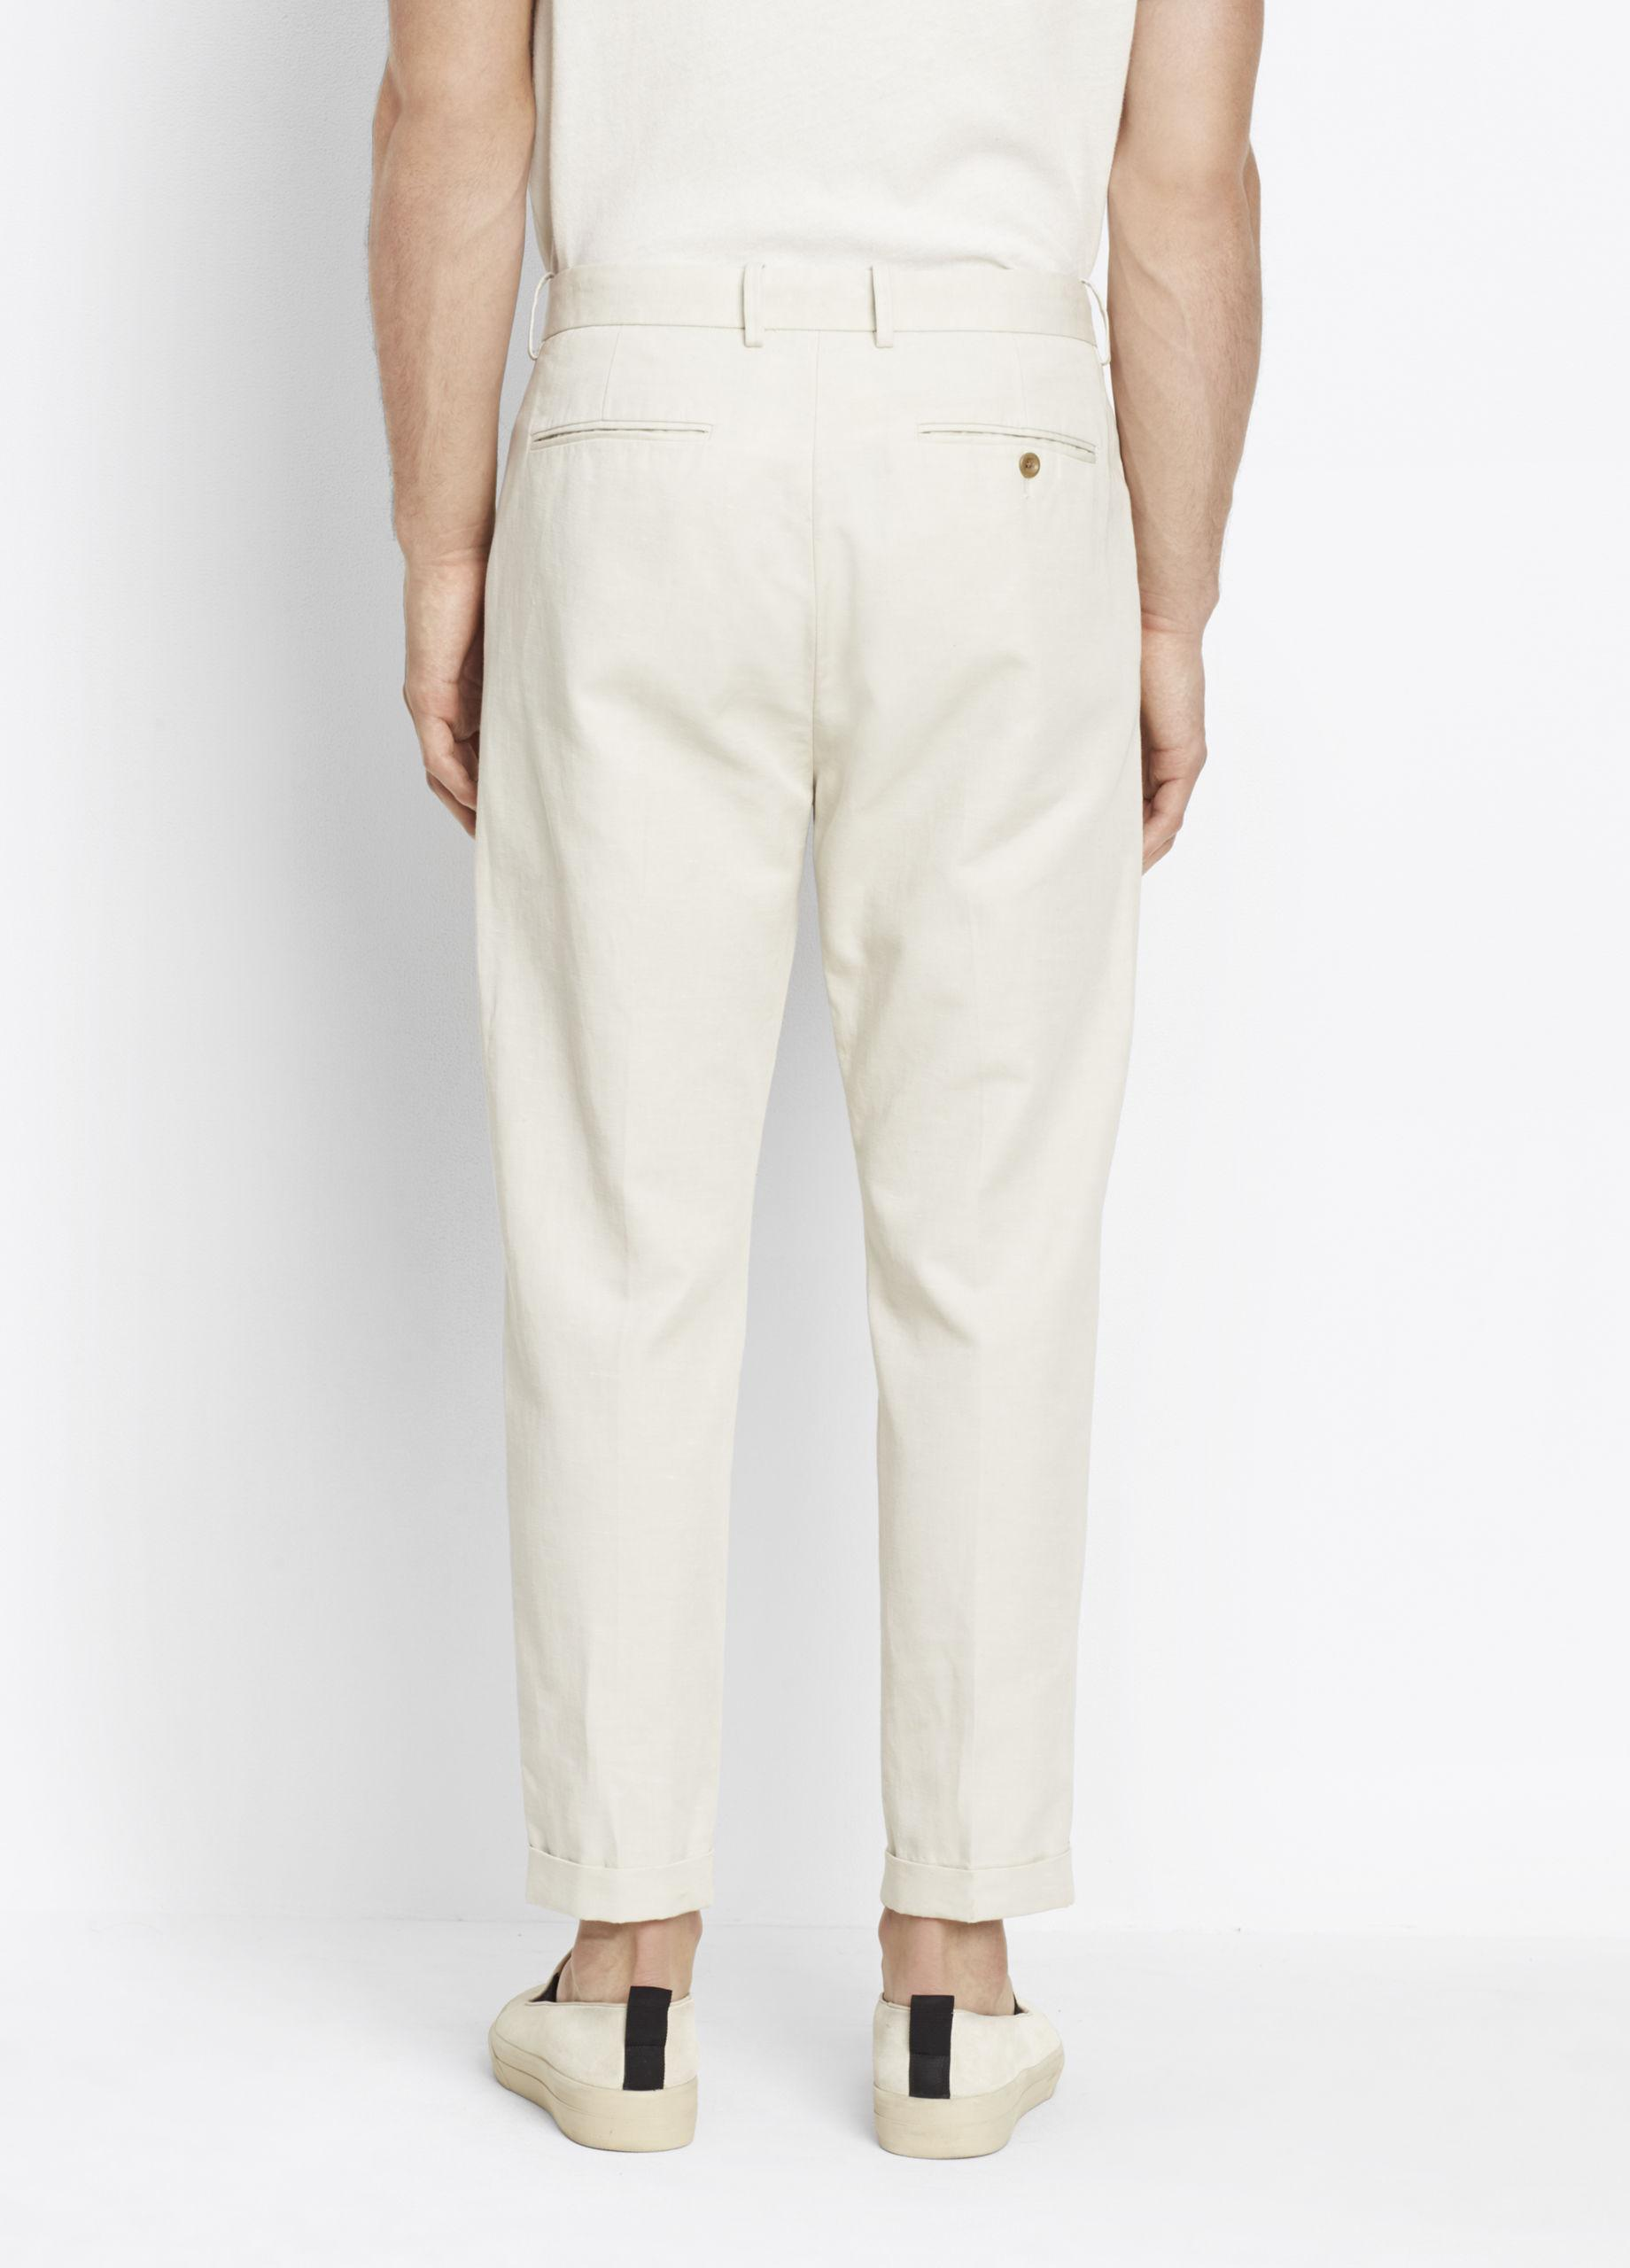 Vince Cotton Relaxed Cropped Trouser in Stone (Natural) for Men